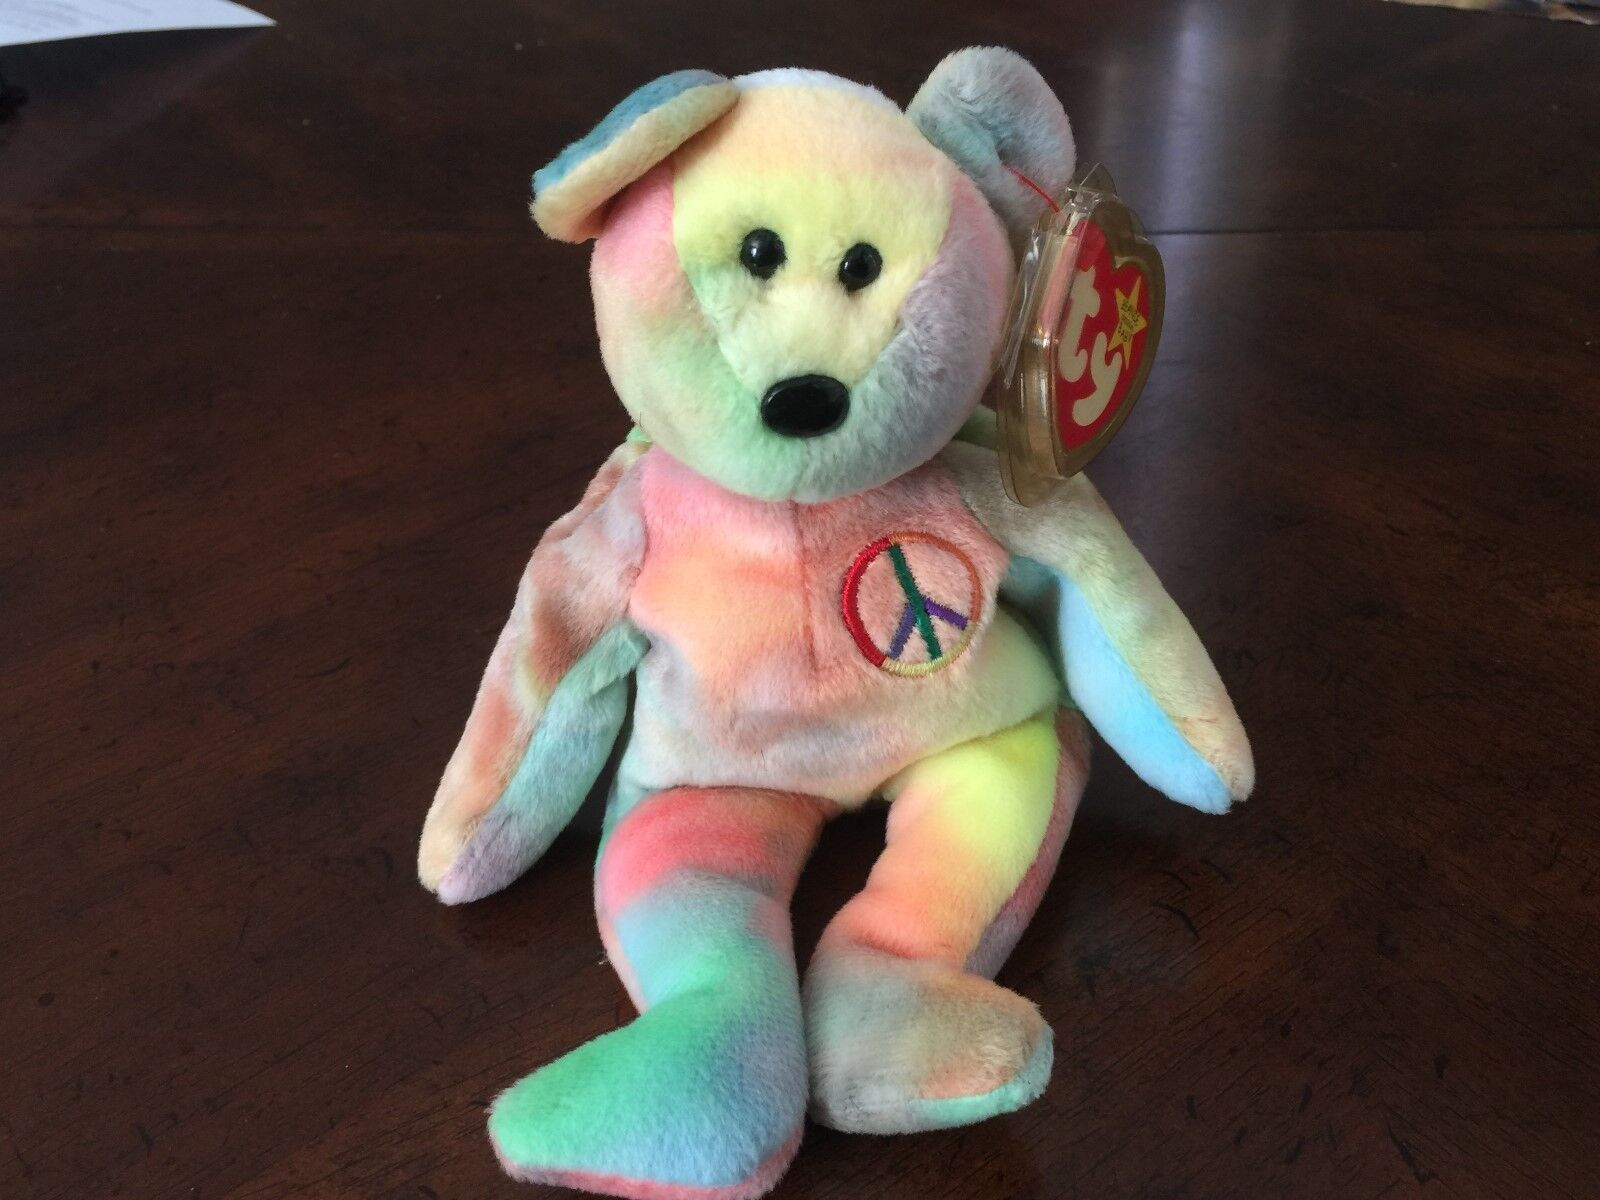 1996 Peace Beanie Baby w multiple errors. Top 10 most collectible